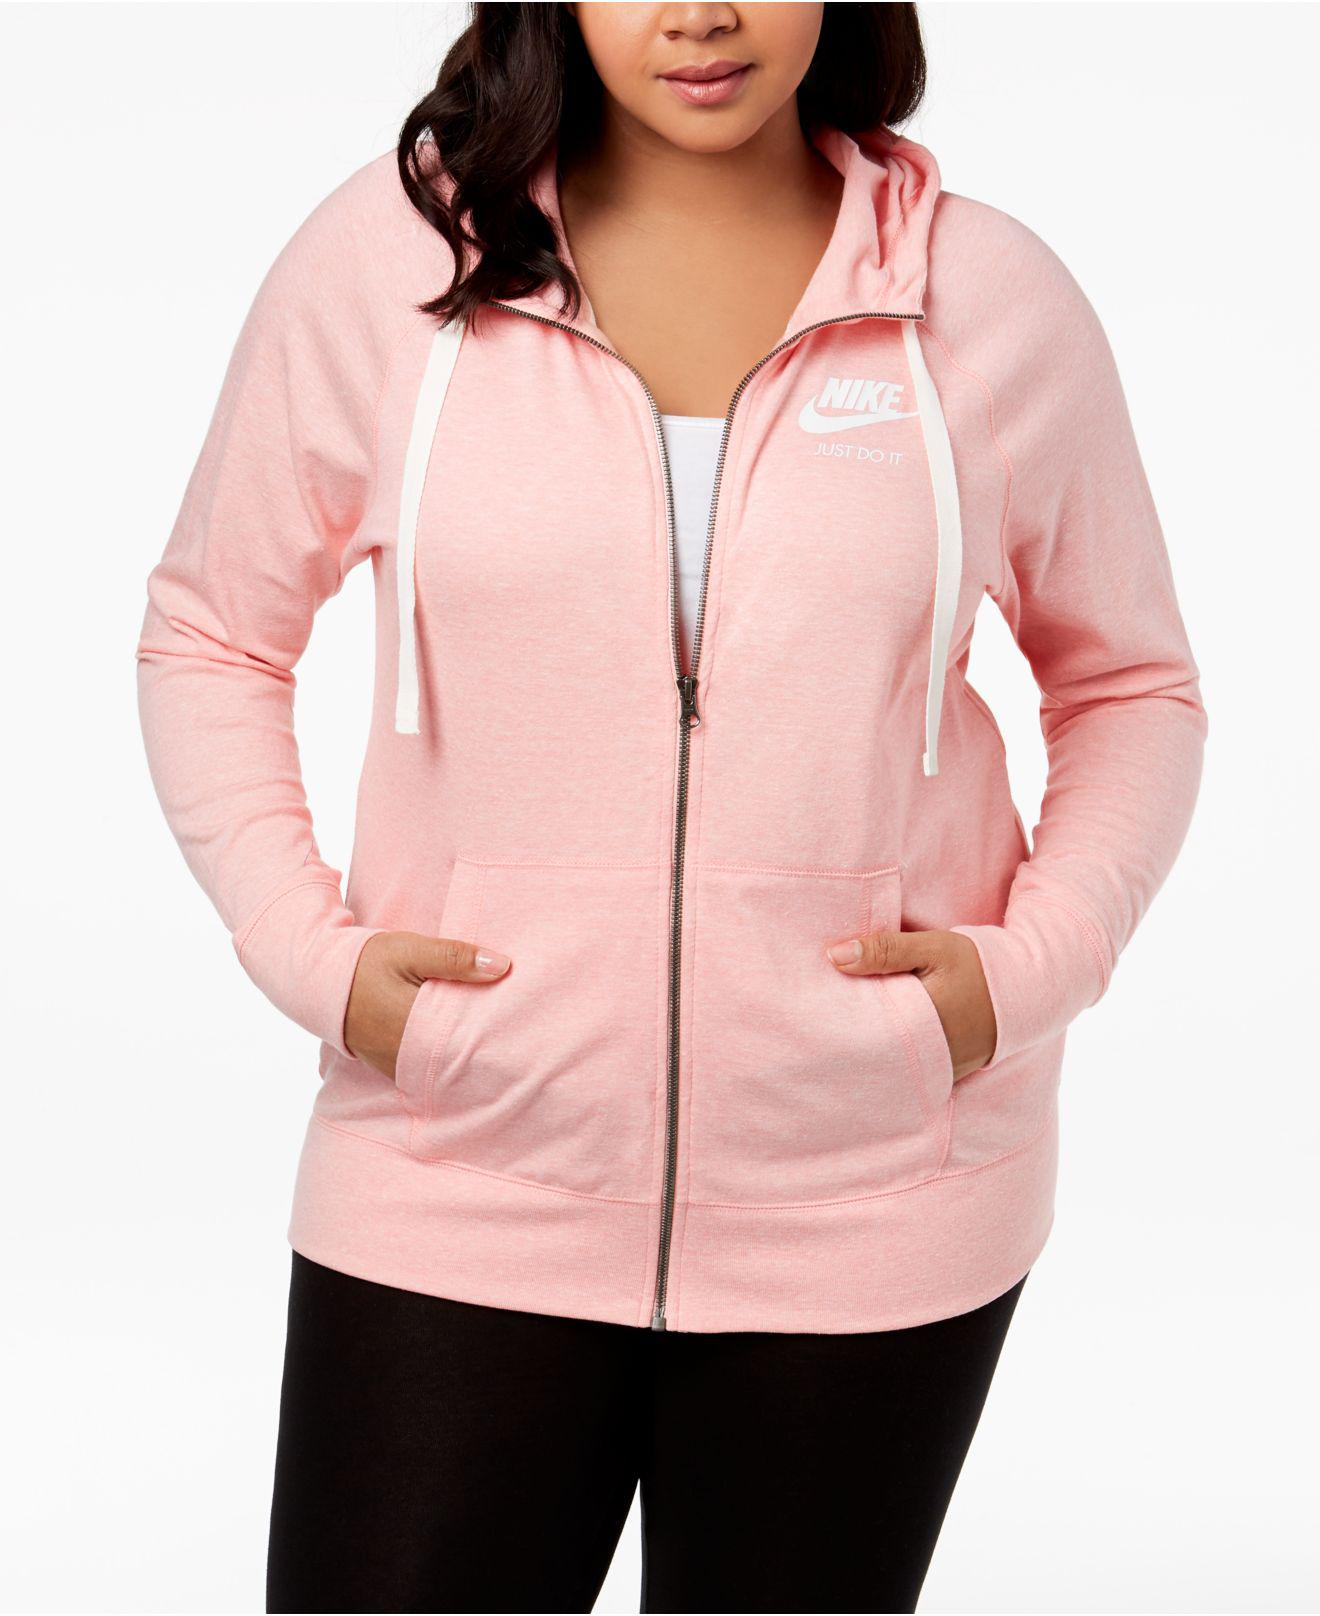 ee5cc6ab7e5 Lyst - Nike Plus Size Sportswear Gym Vintage Hoodie in Pink